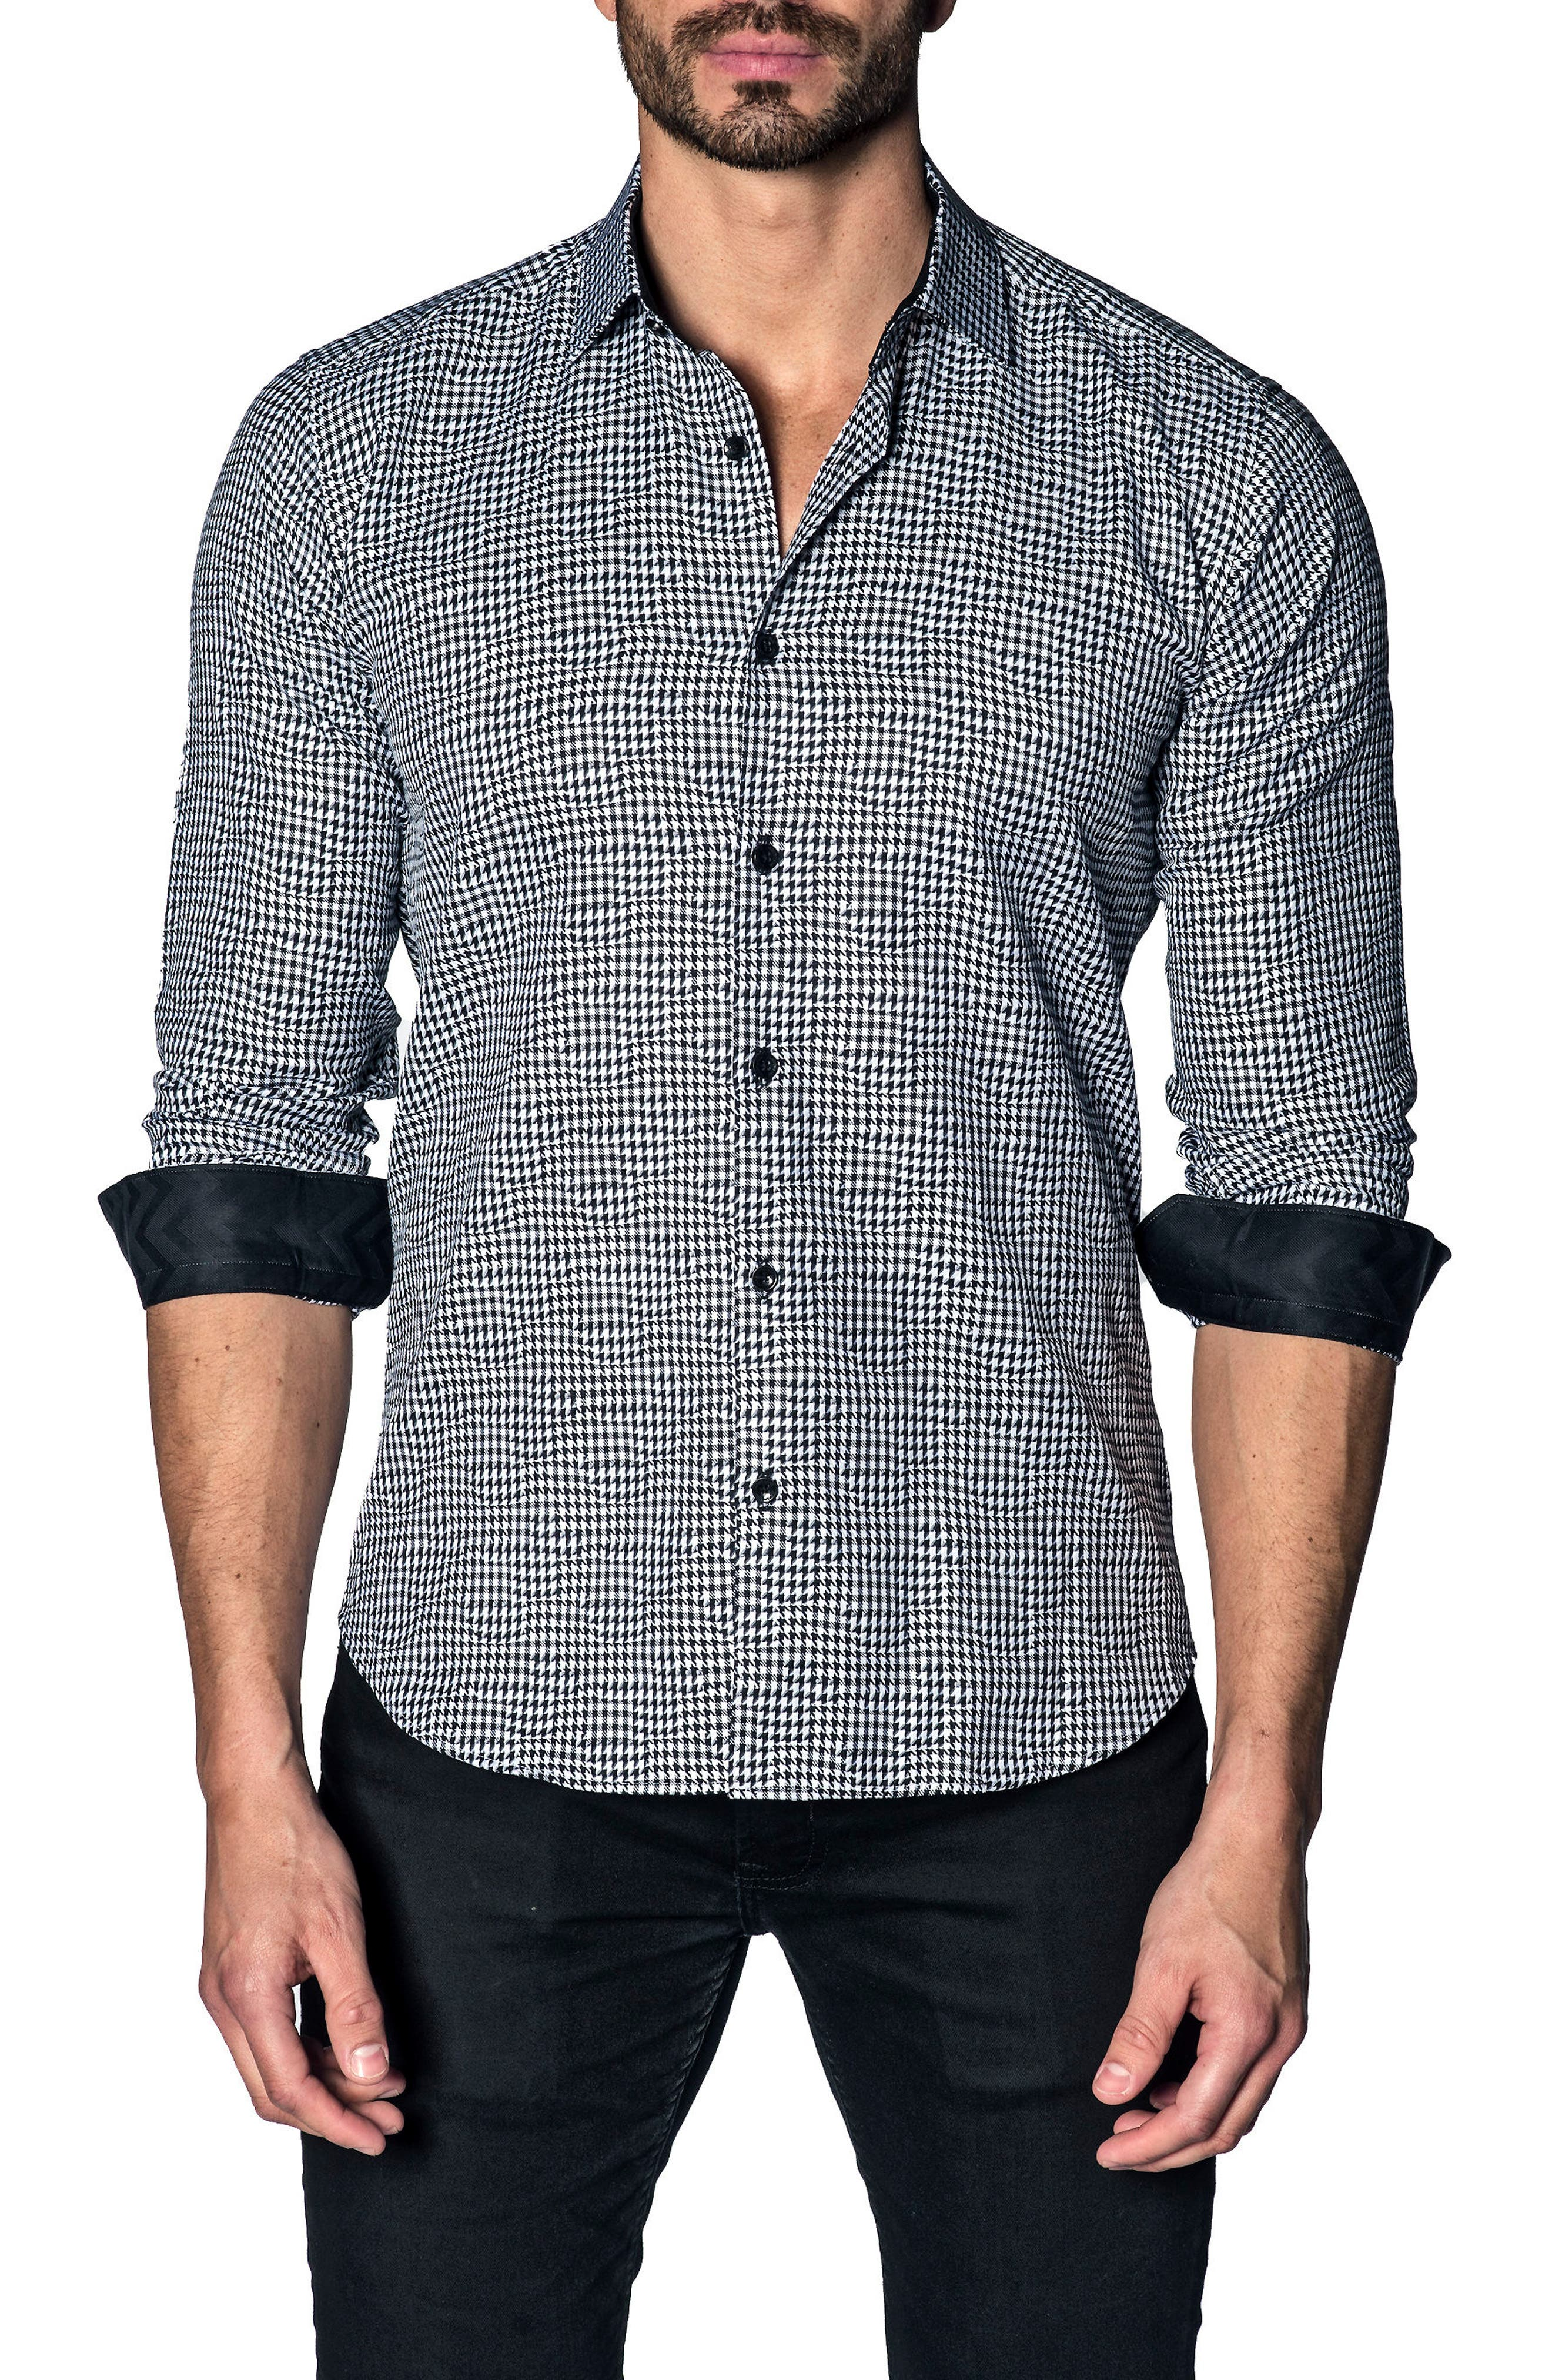 Slim Fit Houndstooth Sport Shirt,                             Main thumbnail 1, color,                             WHITE BLACK HOUNDSTOOTH